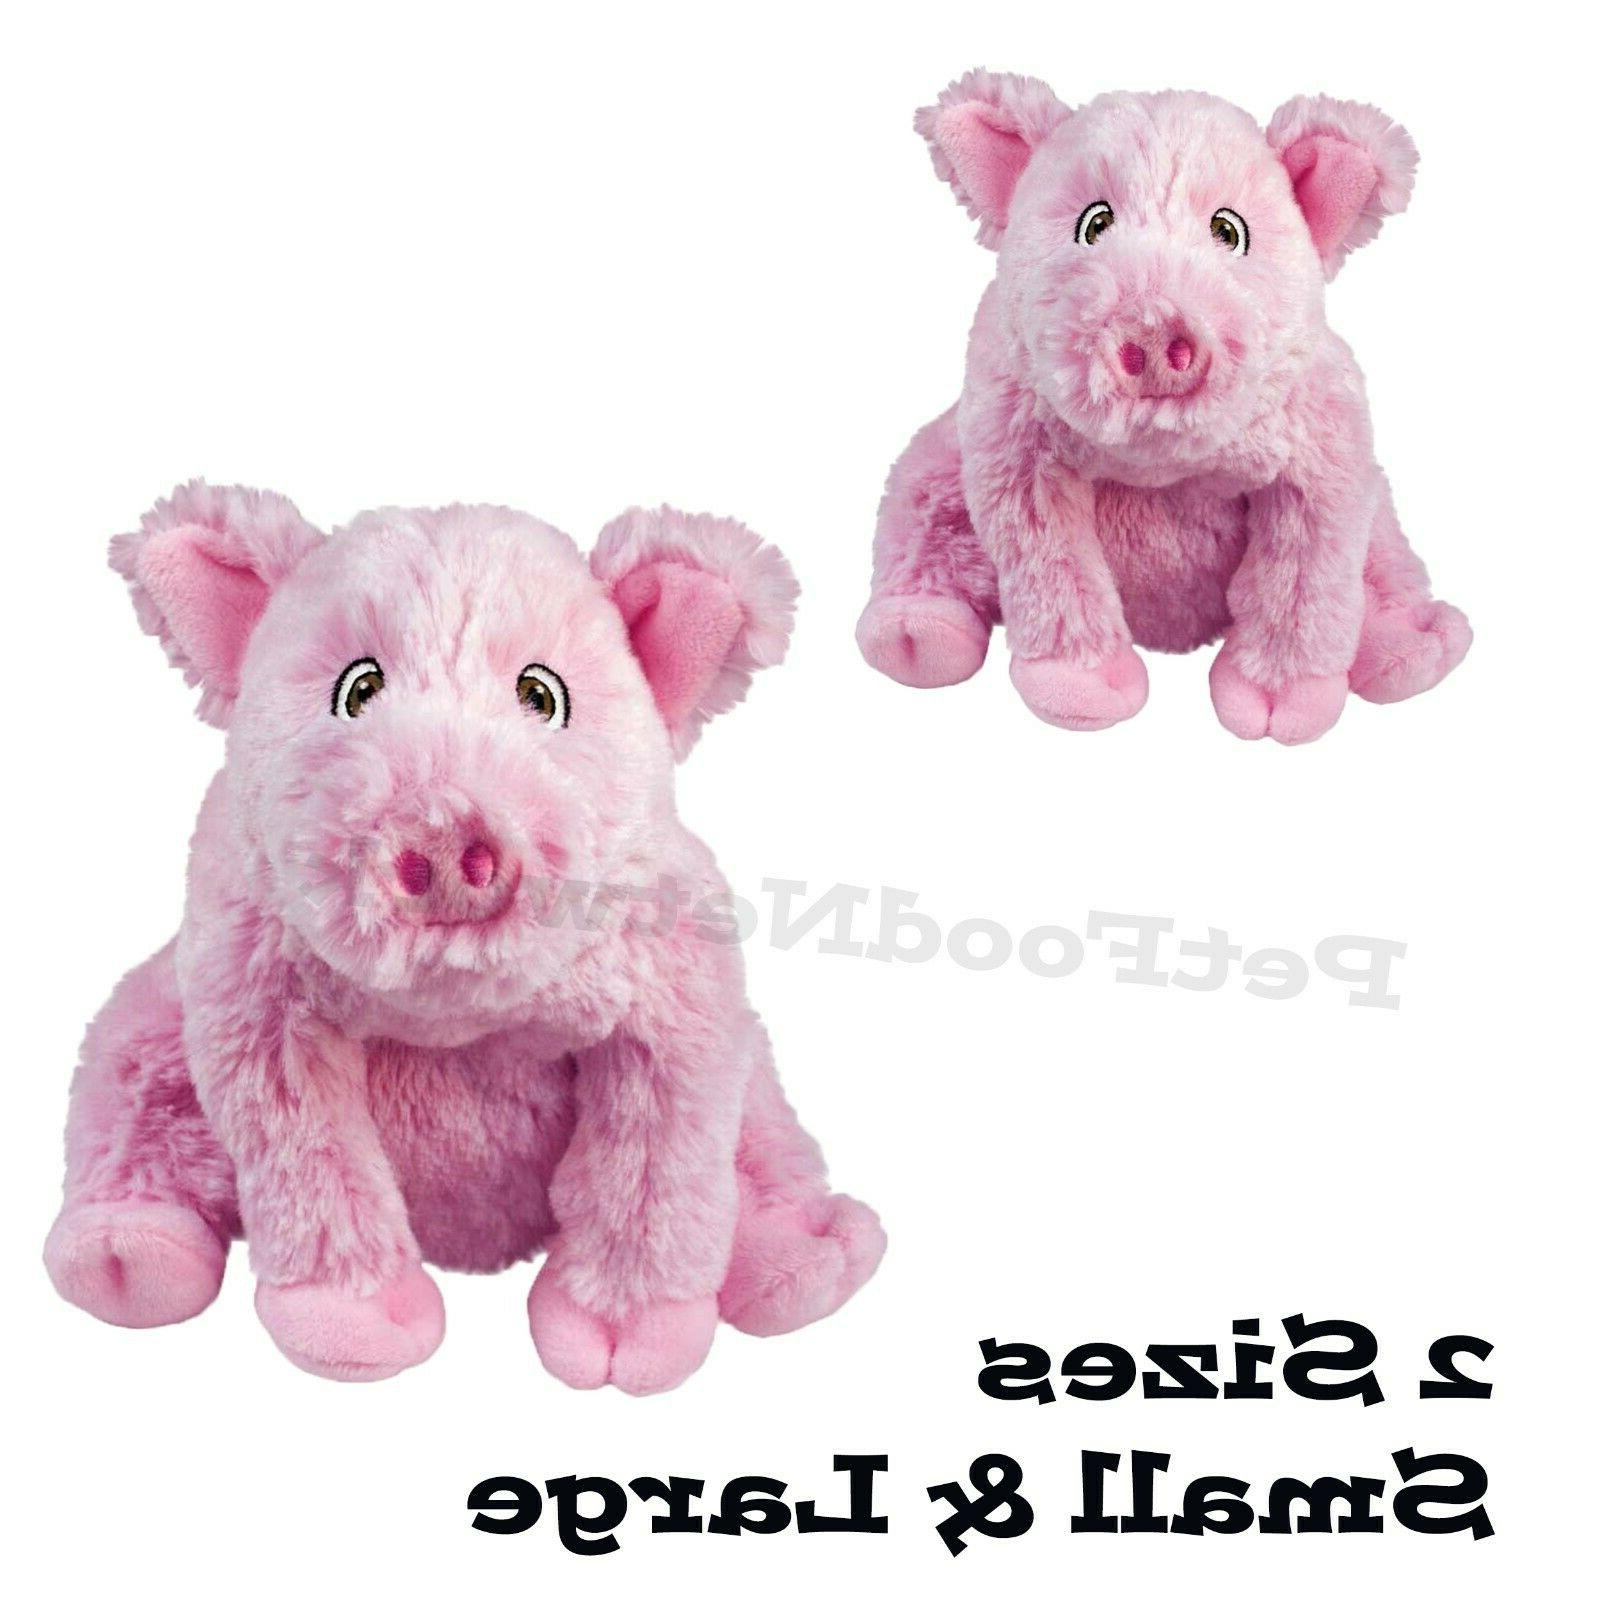 comfort kiddos dog toy pig free shipping